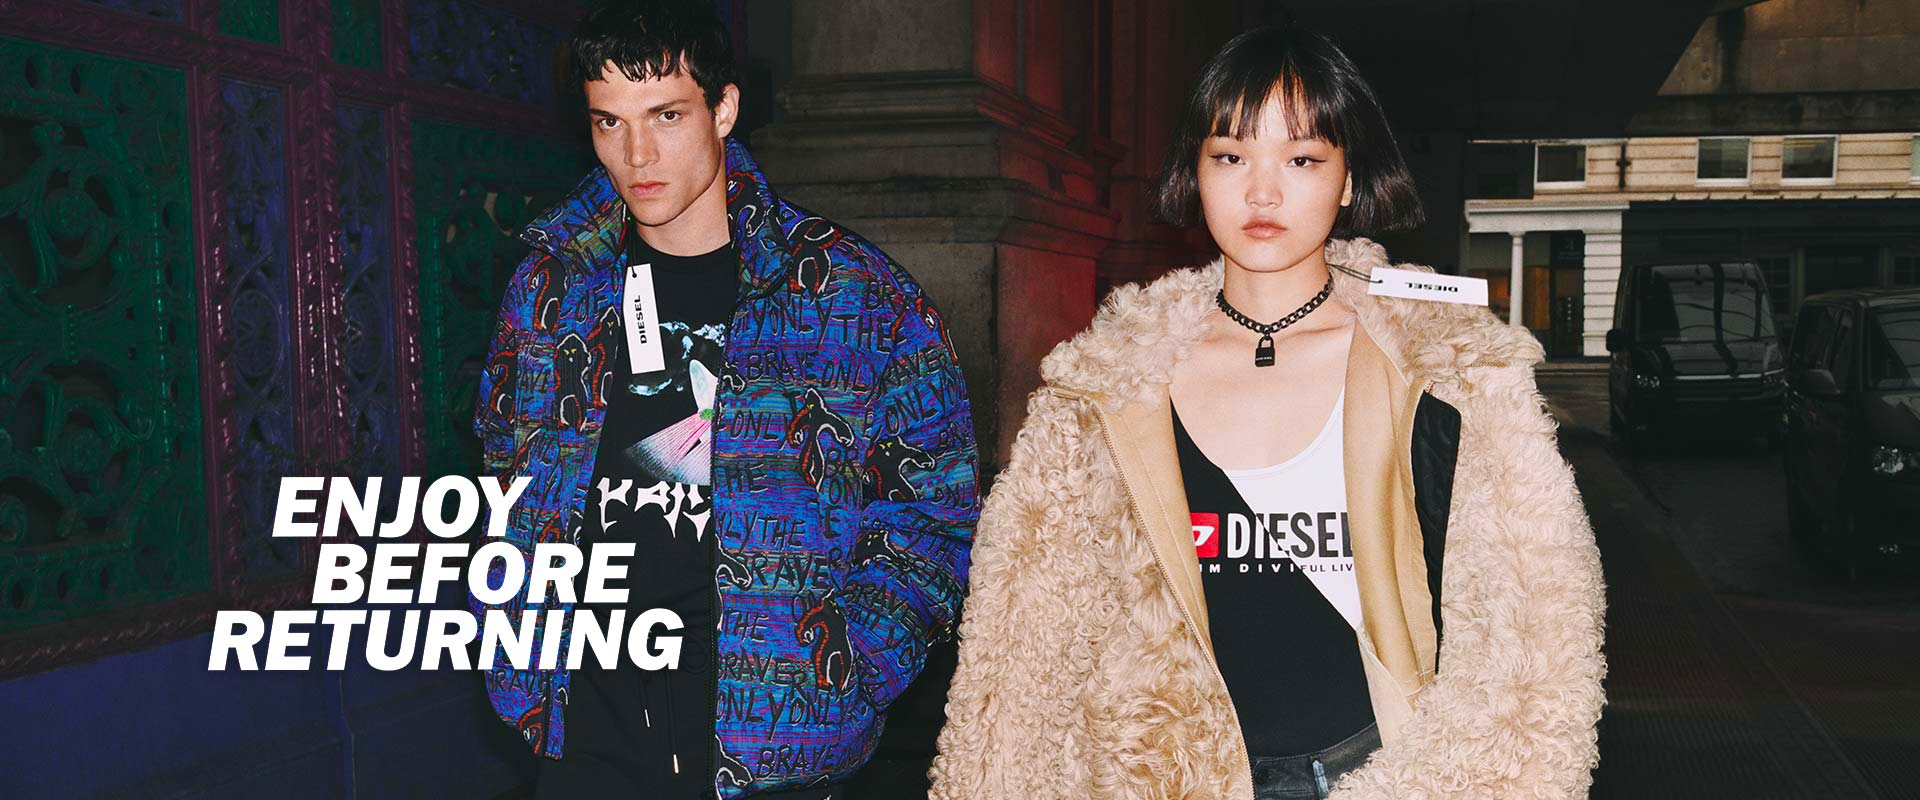 The New Diesel Campaign: Enjoy Before Returning!